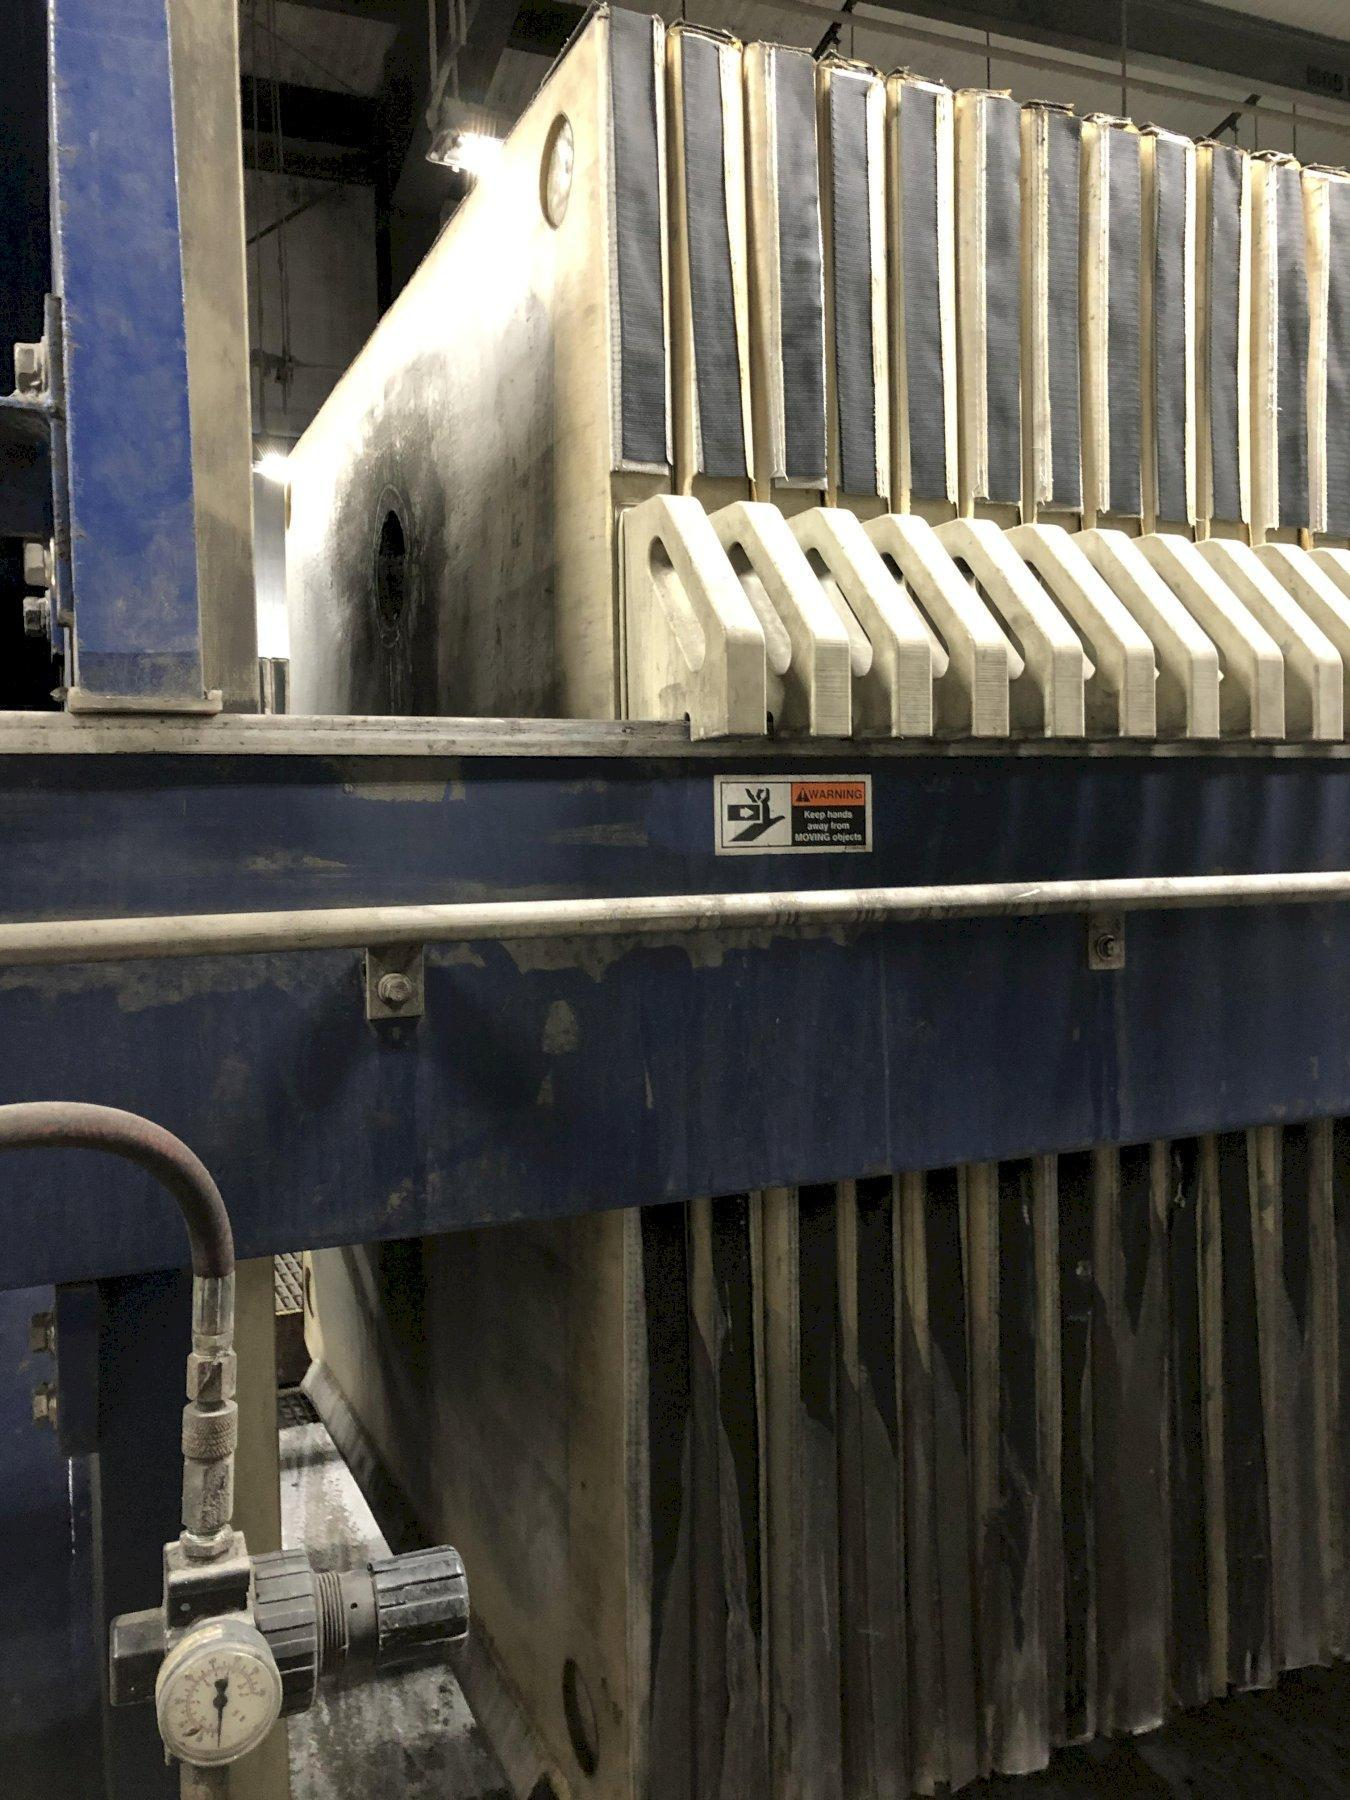 Siemens model 1500n32-64/90-125/175sylc 1500 mm filter press s/n f008178 with 65- approx. 1500 x 1500 mm filters, Siemens plc controls, side bar suspension